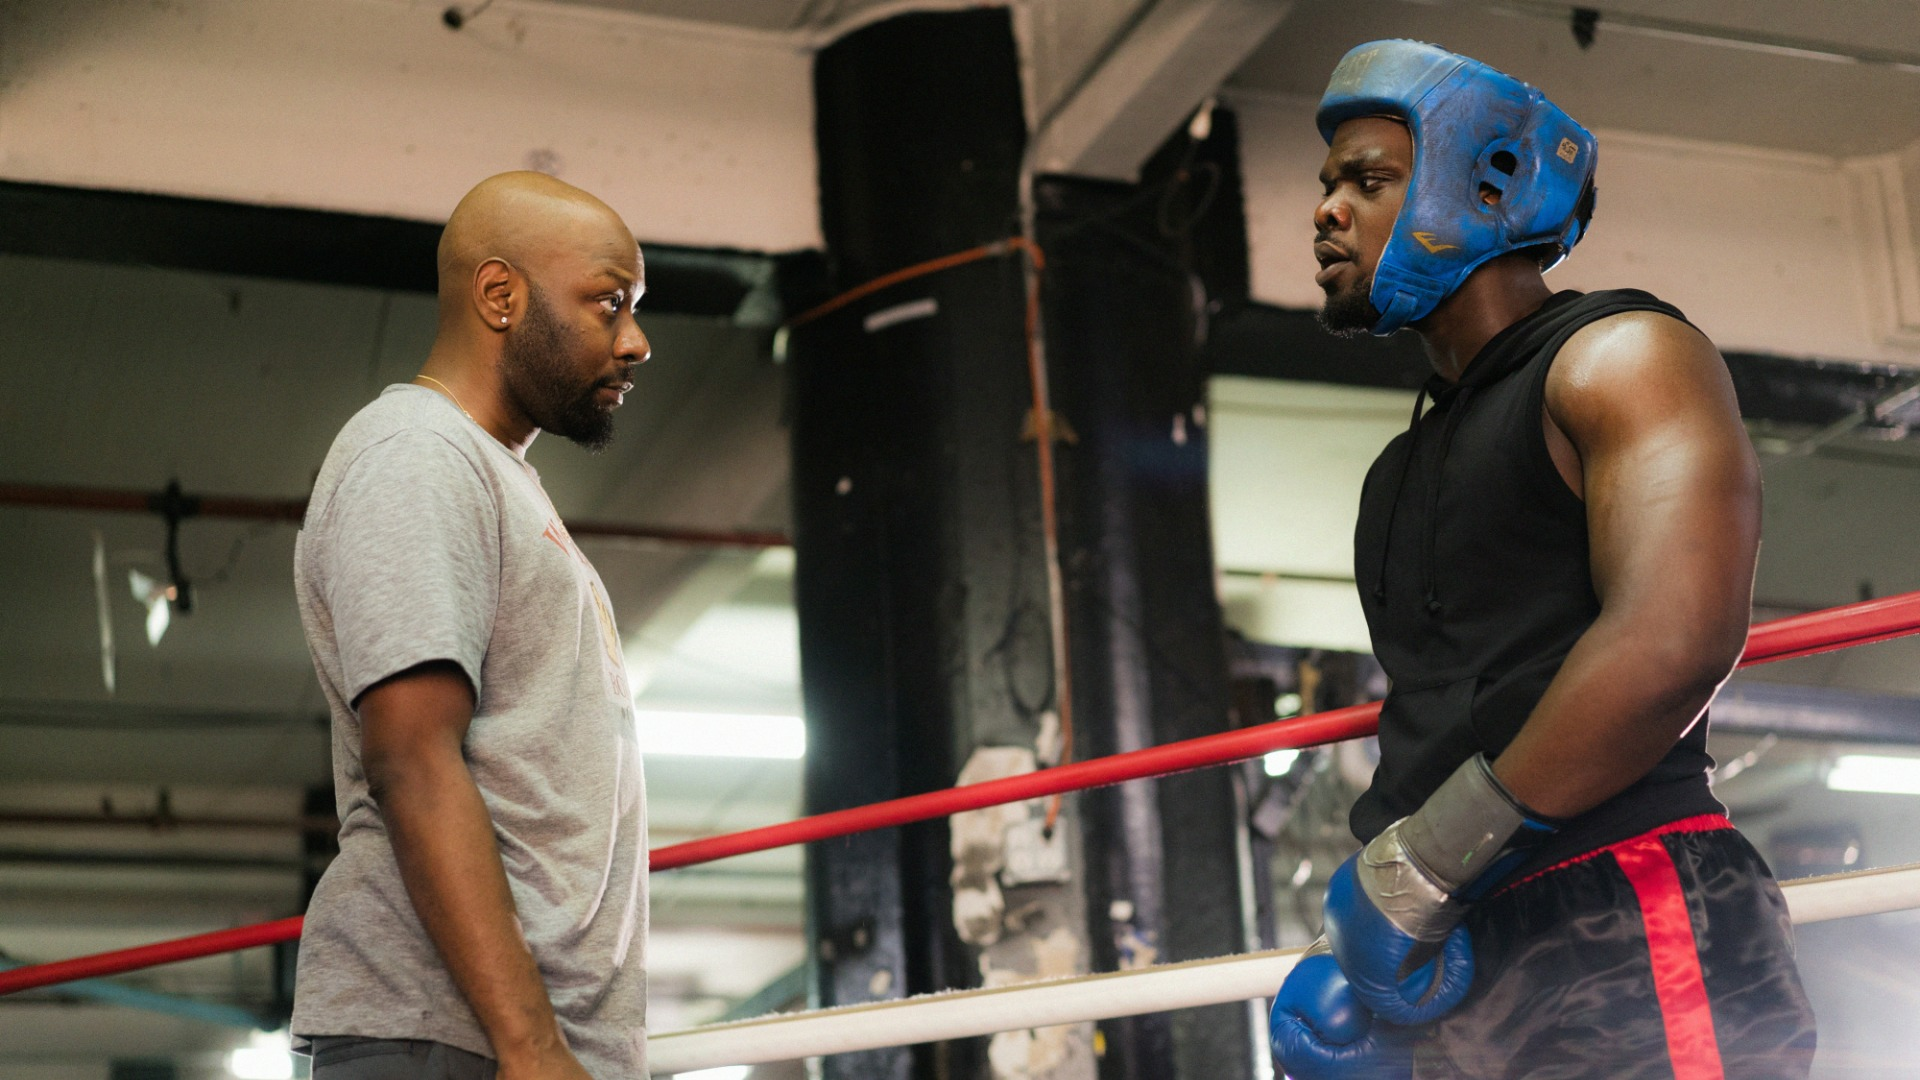 Shinwell speaks to a boxer in the ring.